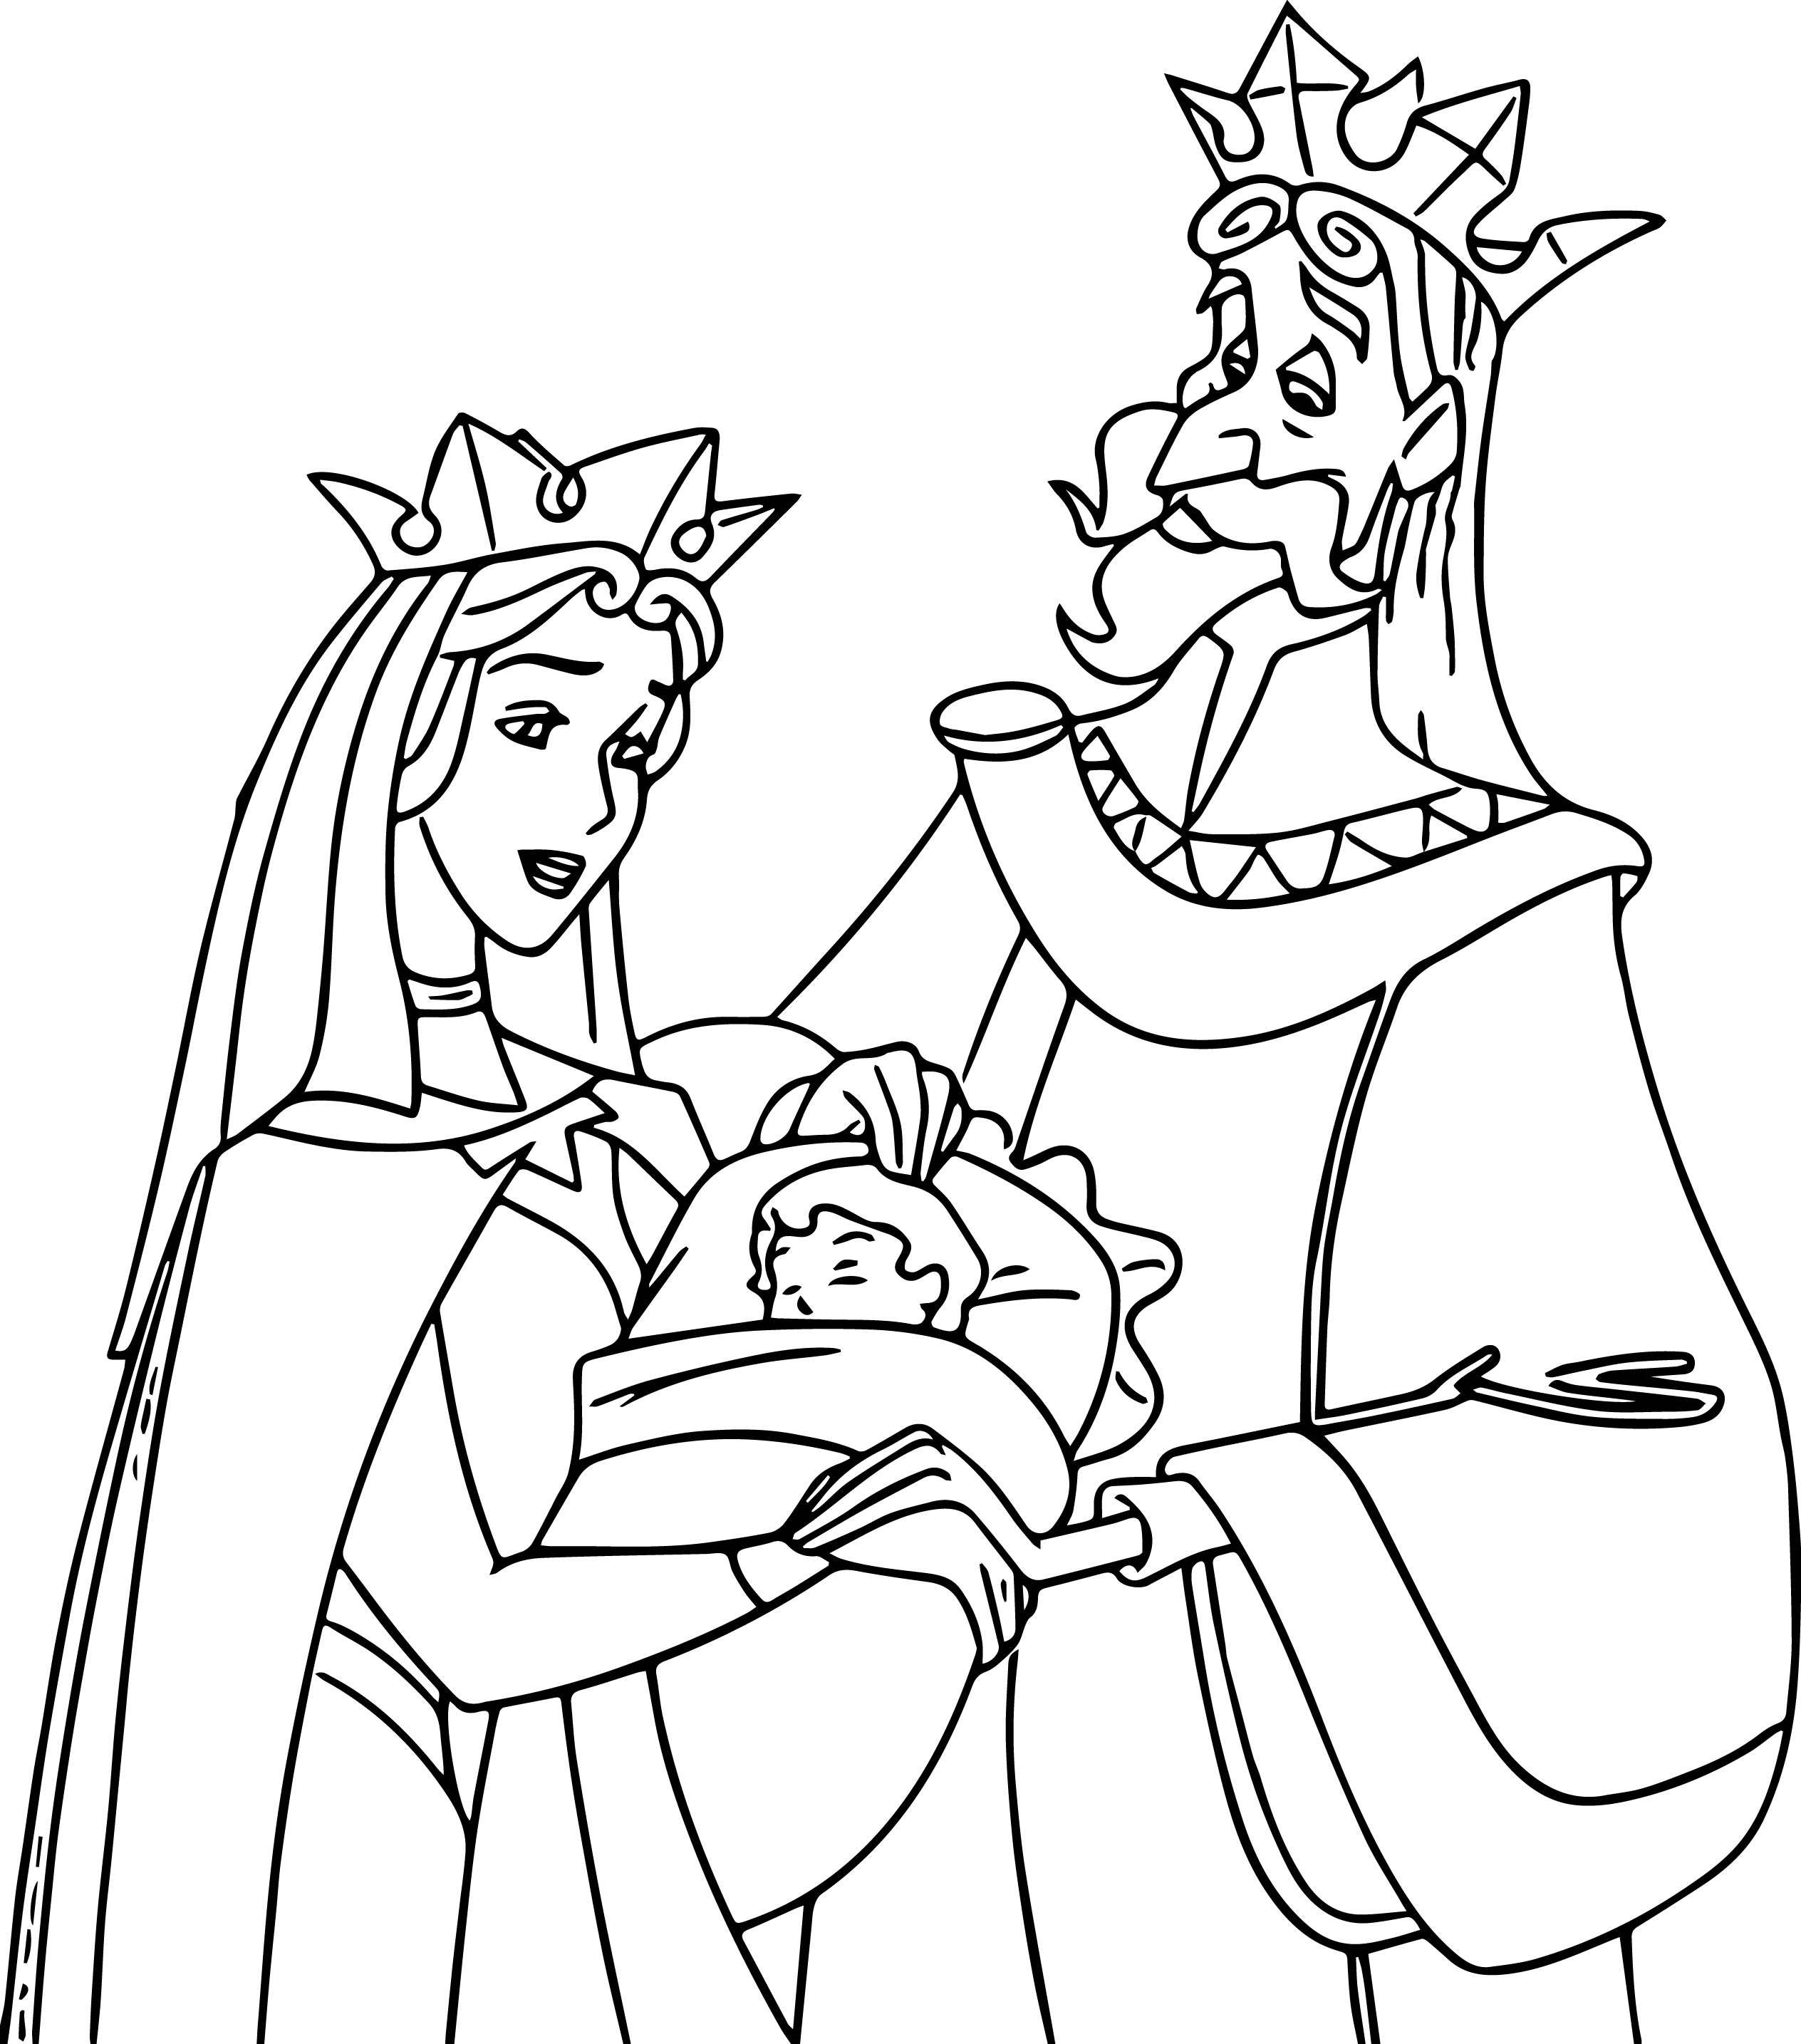 Christmas Love Coloring Pages With I Mom Merry And Dad